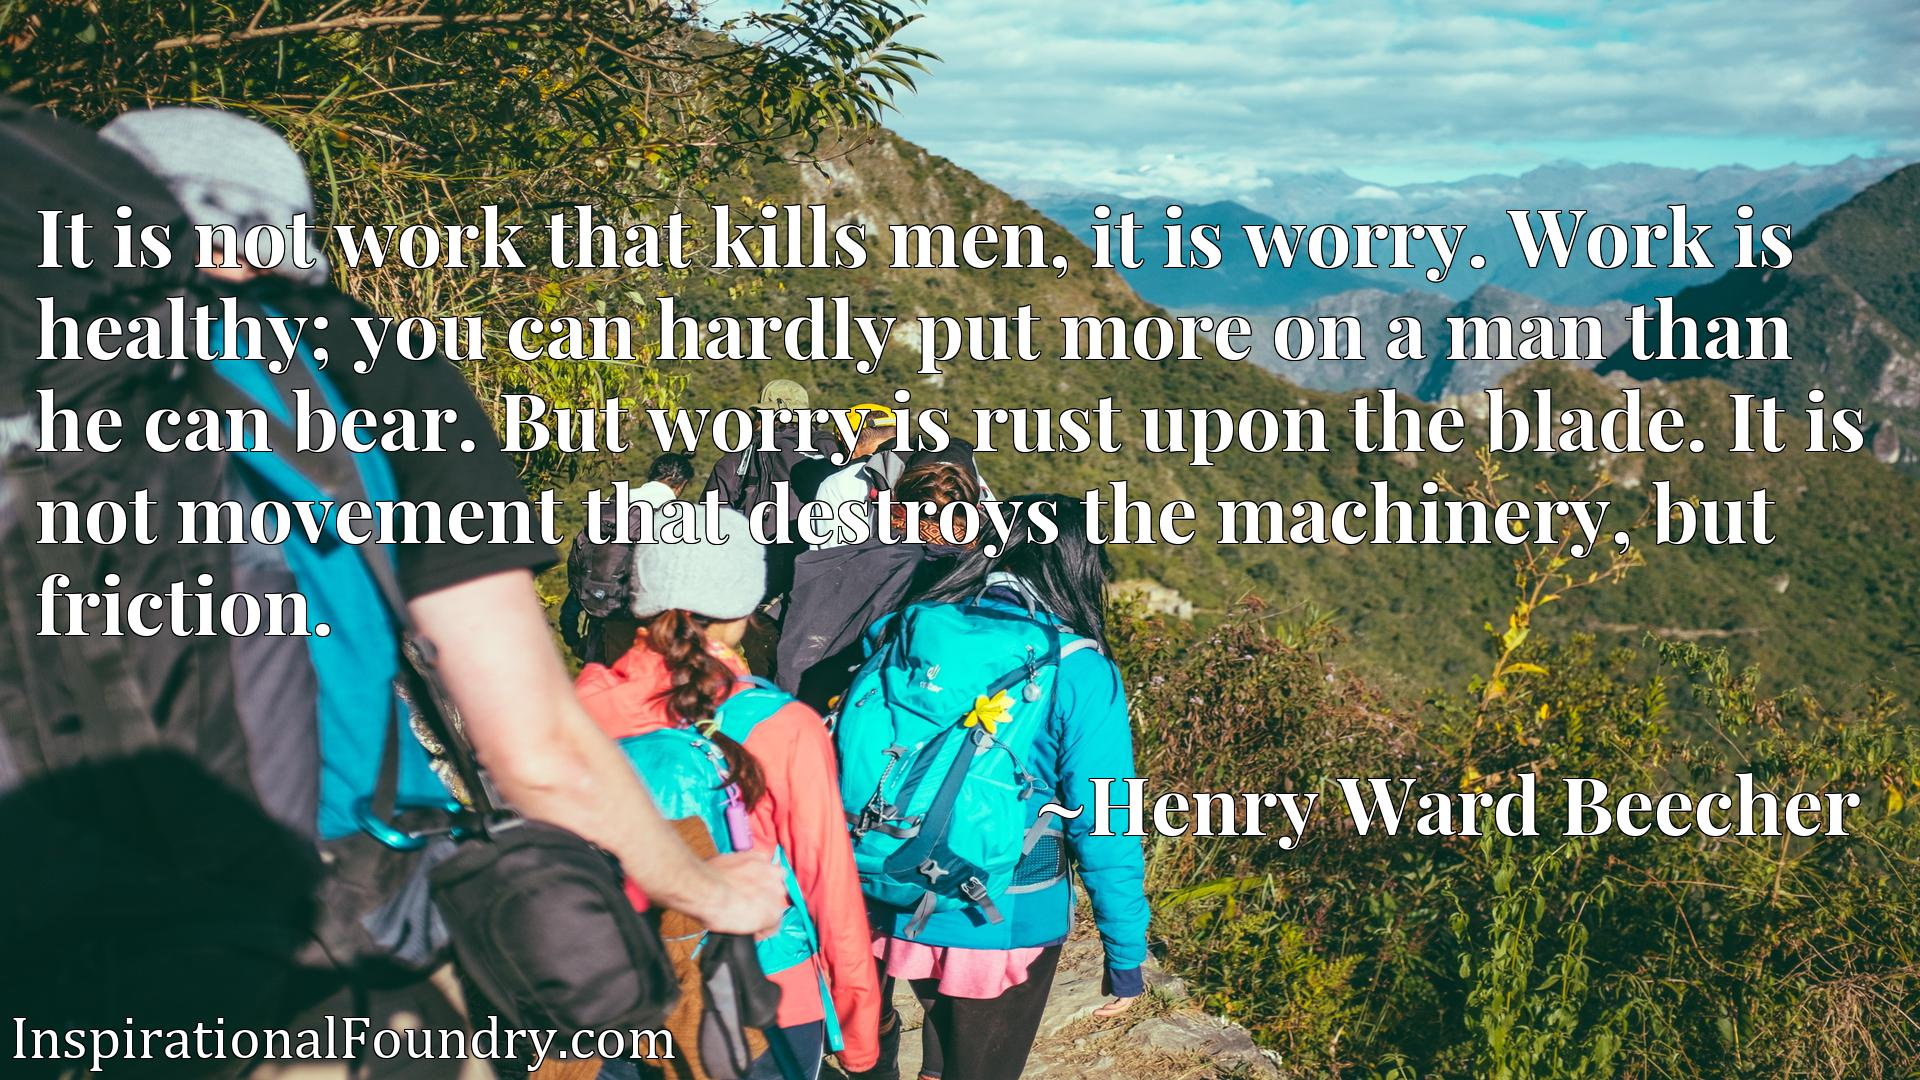 It is not work that kills men, it is worry. Work is healthy; you can hardly put more on a man than he can bear. But worry is rust upon the blade. It is not movement that destroys the machinery, but friction.